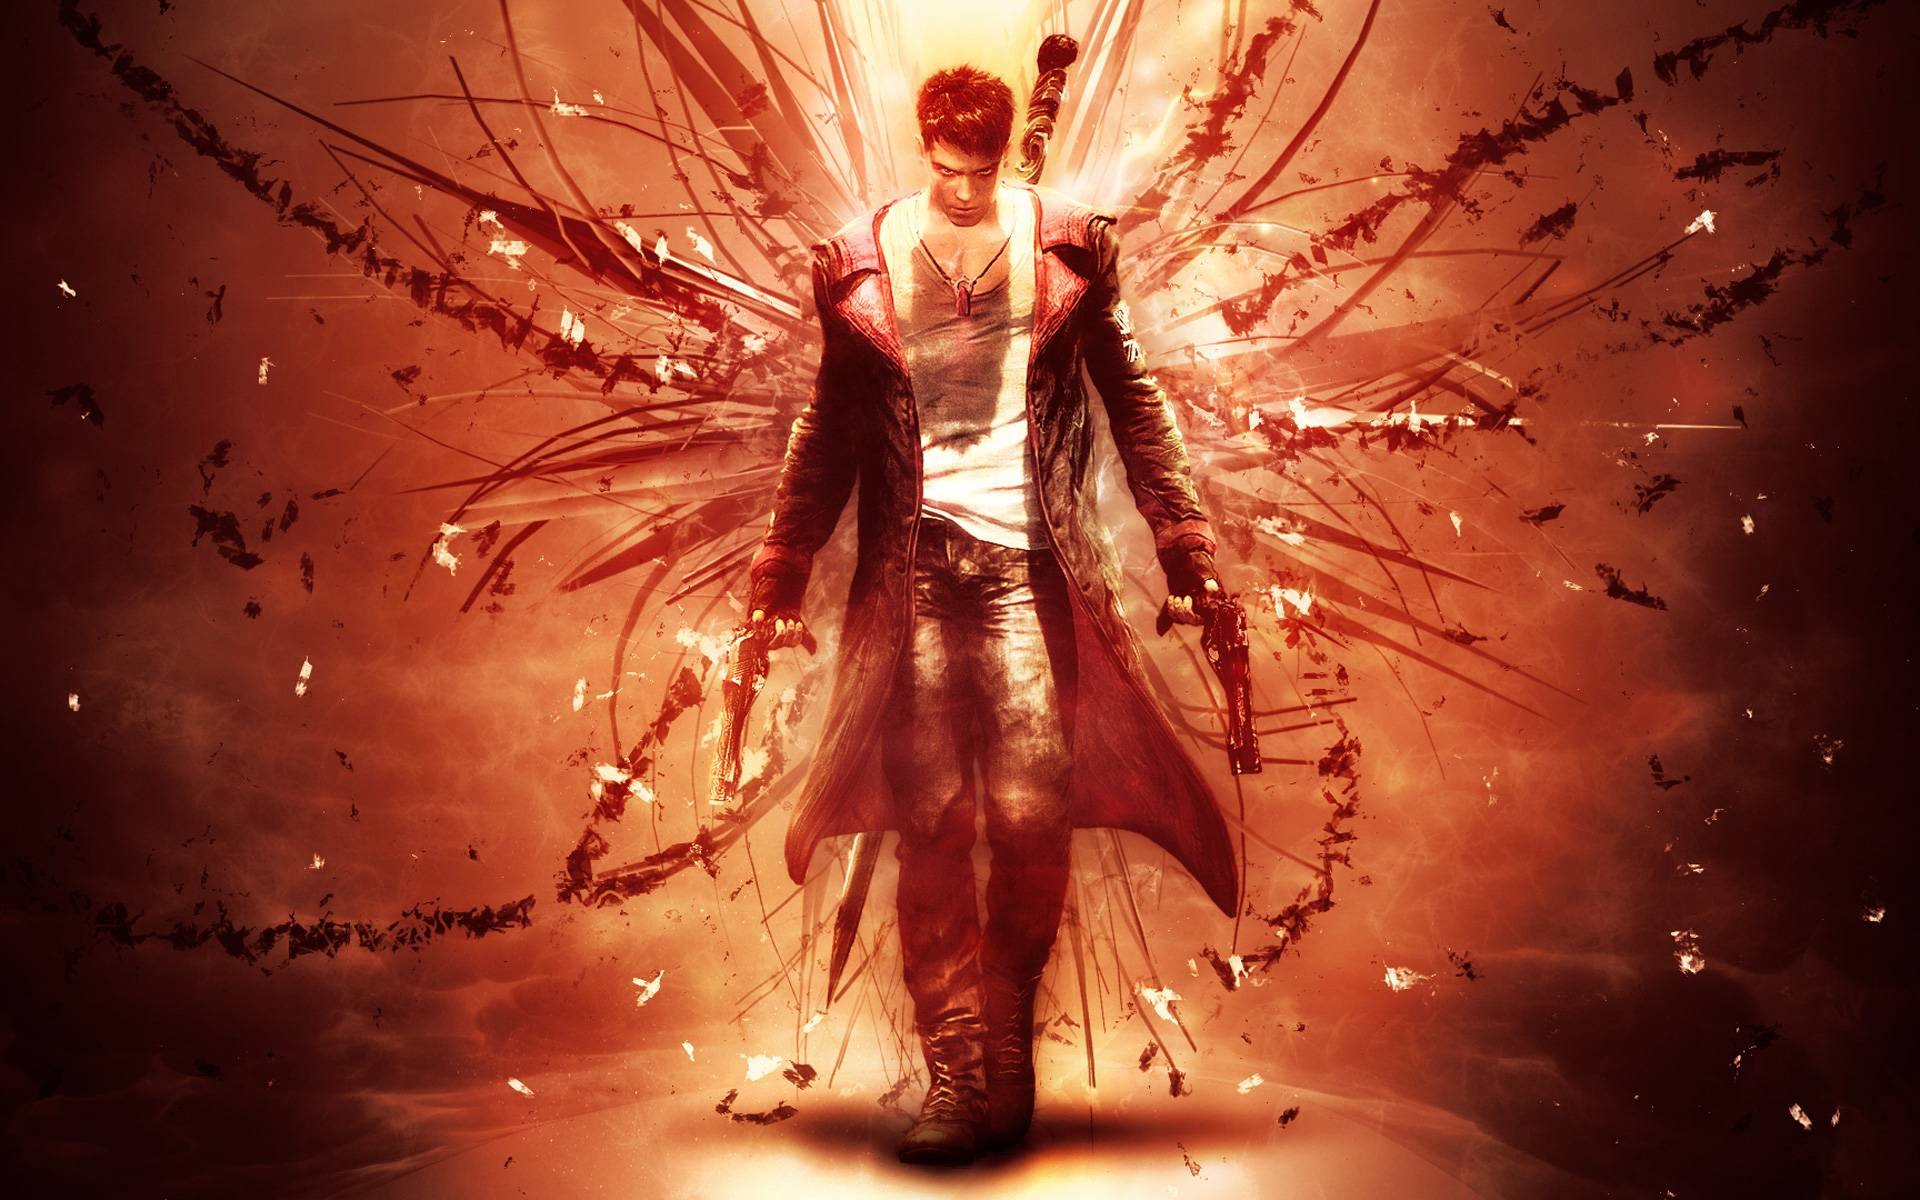 Dmc devil may cry wallpapers in hd video game news reviews previews and blog - Devil may cry hd pics ...